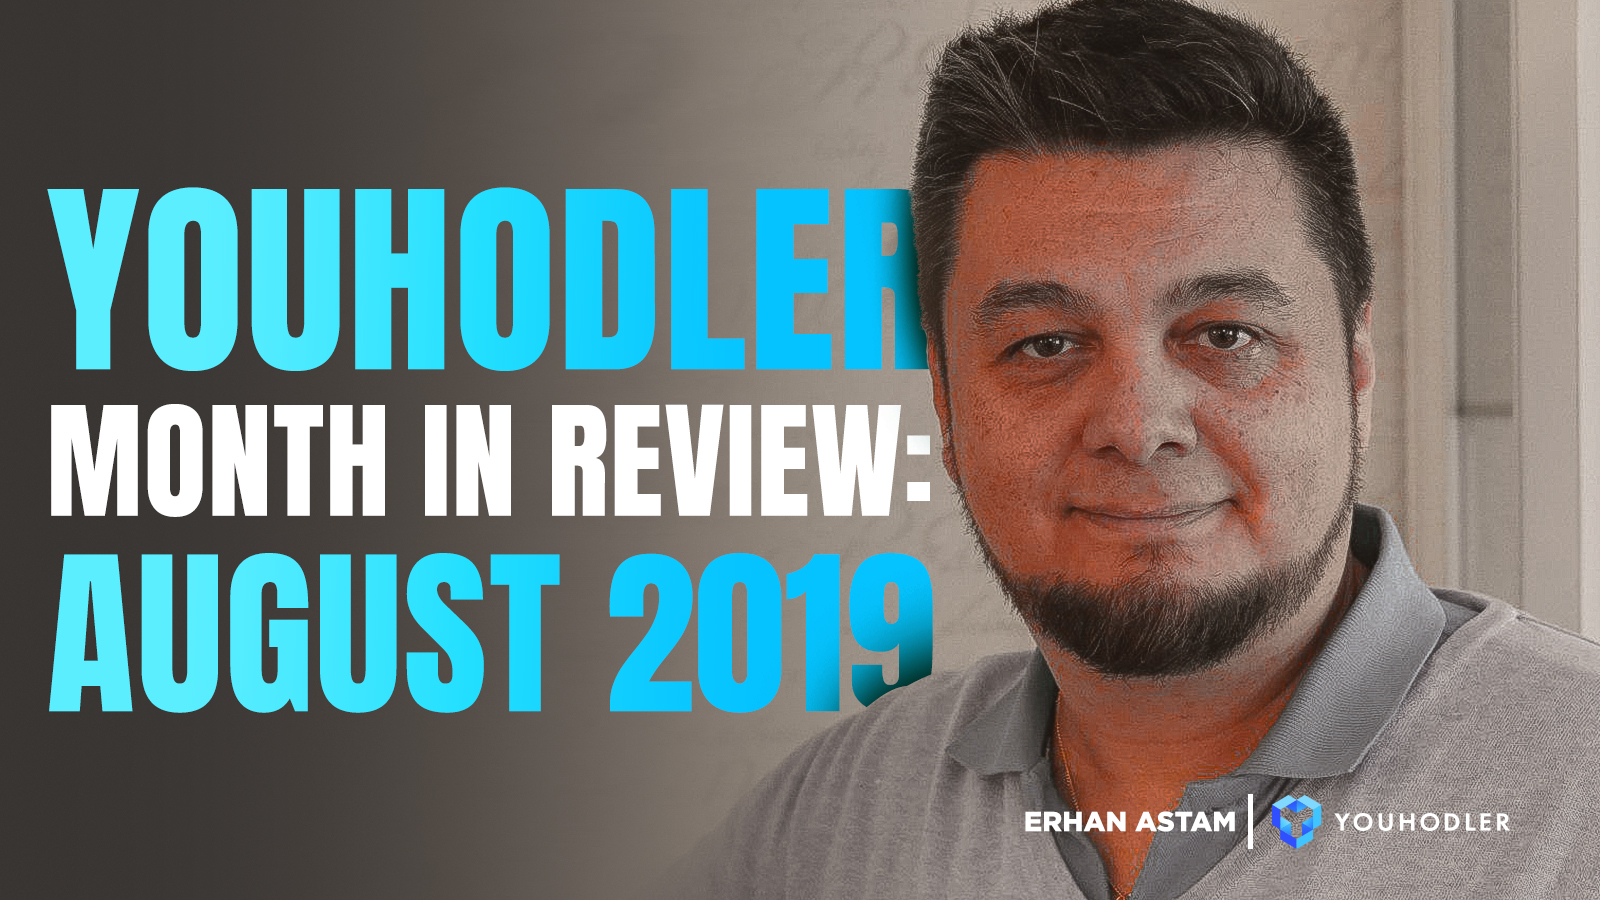 August was a busy month for YouHodler! If you missed those original announcements, we're here to fill you in on what happened in August and also give a glimpse into the near future.